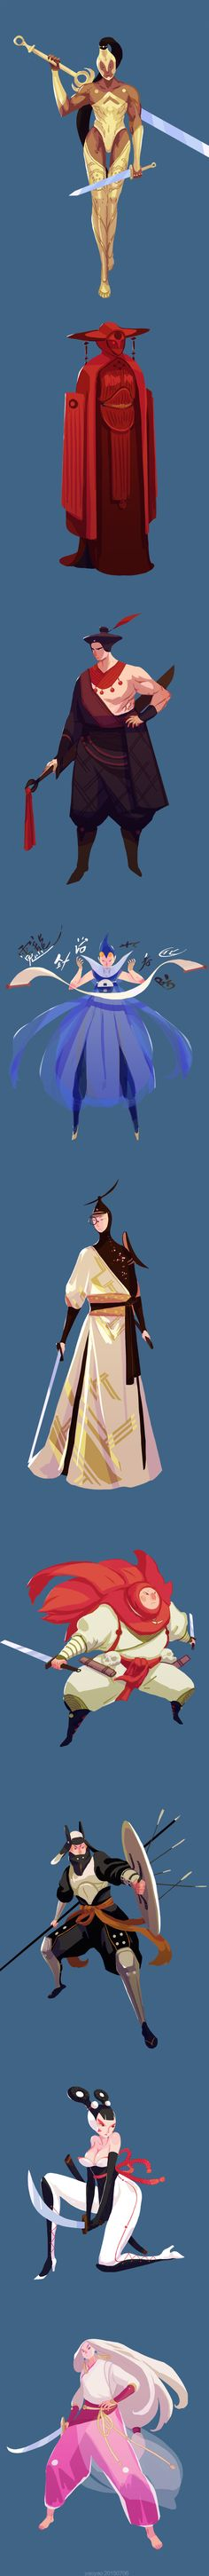 yao yao on Behance Character Design References, Game Character, Character Concept, Concept Art, Character Illustration, Illustration Art, Don Miguel, Character Design Inspiration, Monster